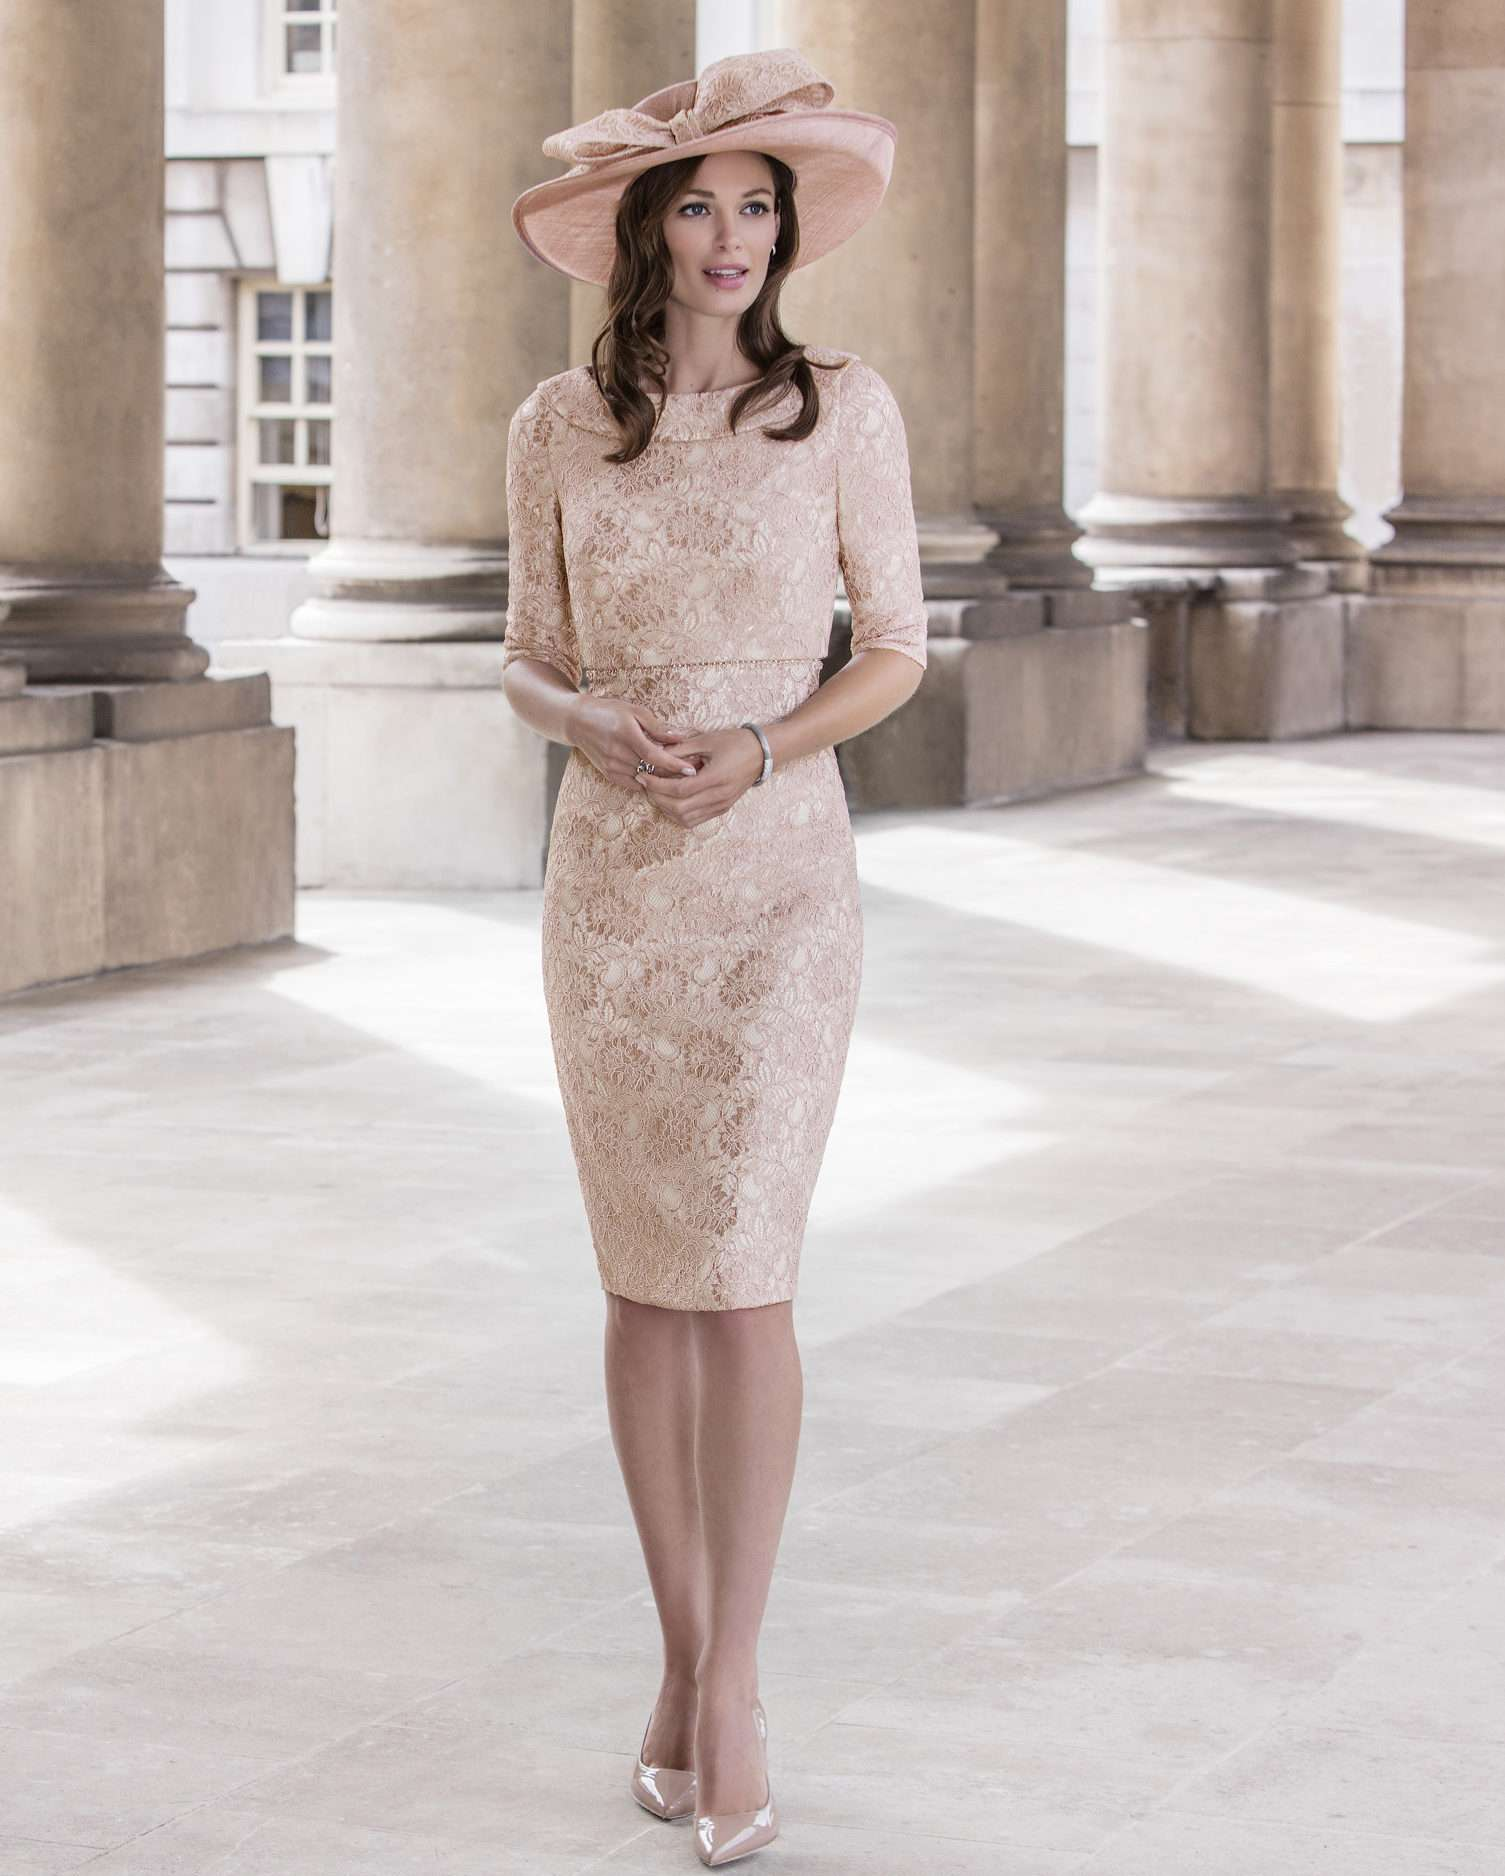 Stunning Mother Of The Bride Dresses: Stunning Dresses For Mother Of The Bride